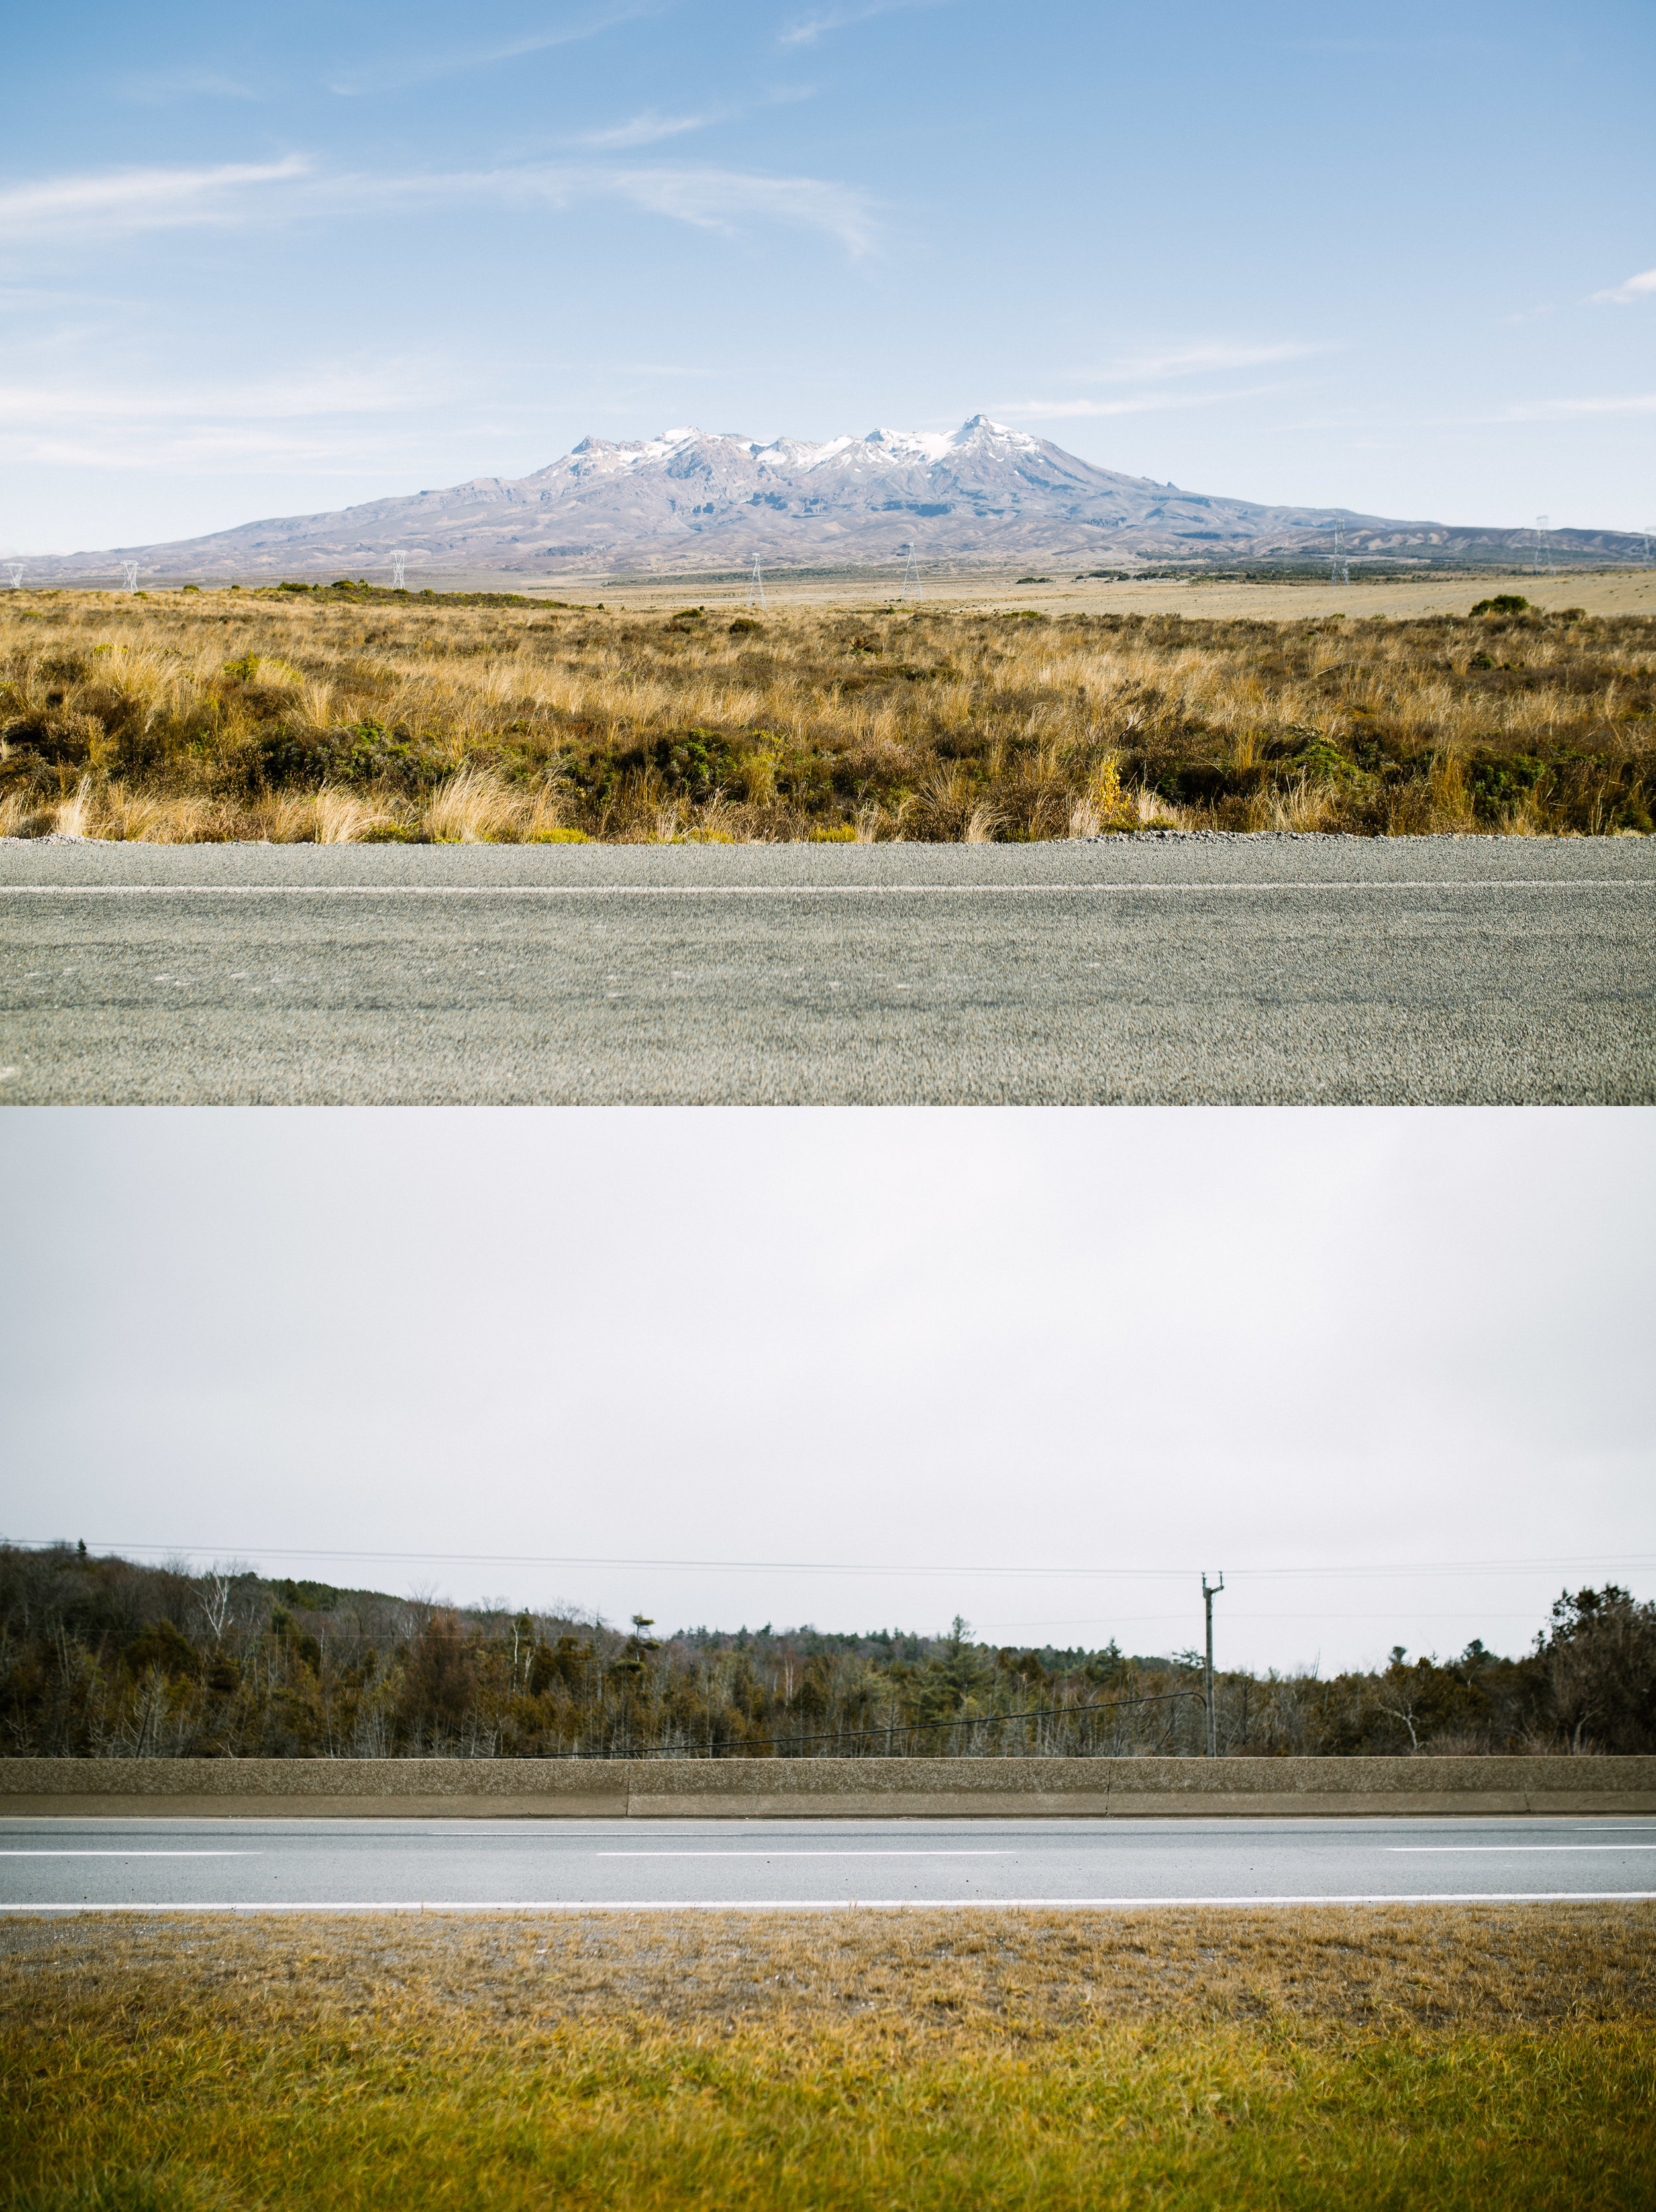 April 26 2017 / December 2 2016.  A contrasting image of the different landscapes my father is now accustomed to between New Zealand and Canada. One of the things he misses most is the landscapes of New Zealand; the mountains, hills, winding roads and oceans. At the top, Mt Ruapehu is viewed from the Rangipo Desert on the side of State Highway 1, also known as Desert Road, New Zealand. This is one of the natural landmarks my father wanted me to see while visiting New Zealand. At the bottom is a common view for myself from a gas station on the side of Highway 115, Ontario, Canada. I pass this view every time I visit my father in Peterborough, Ontario.